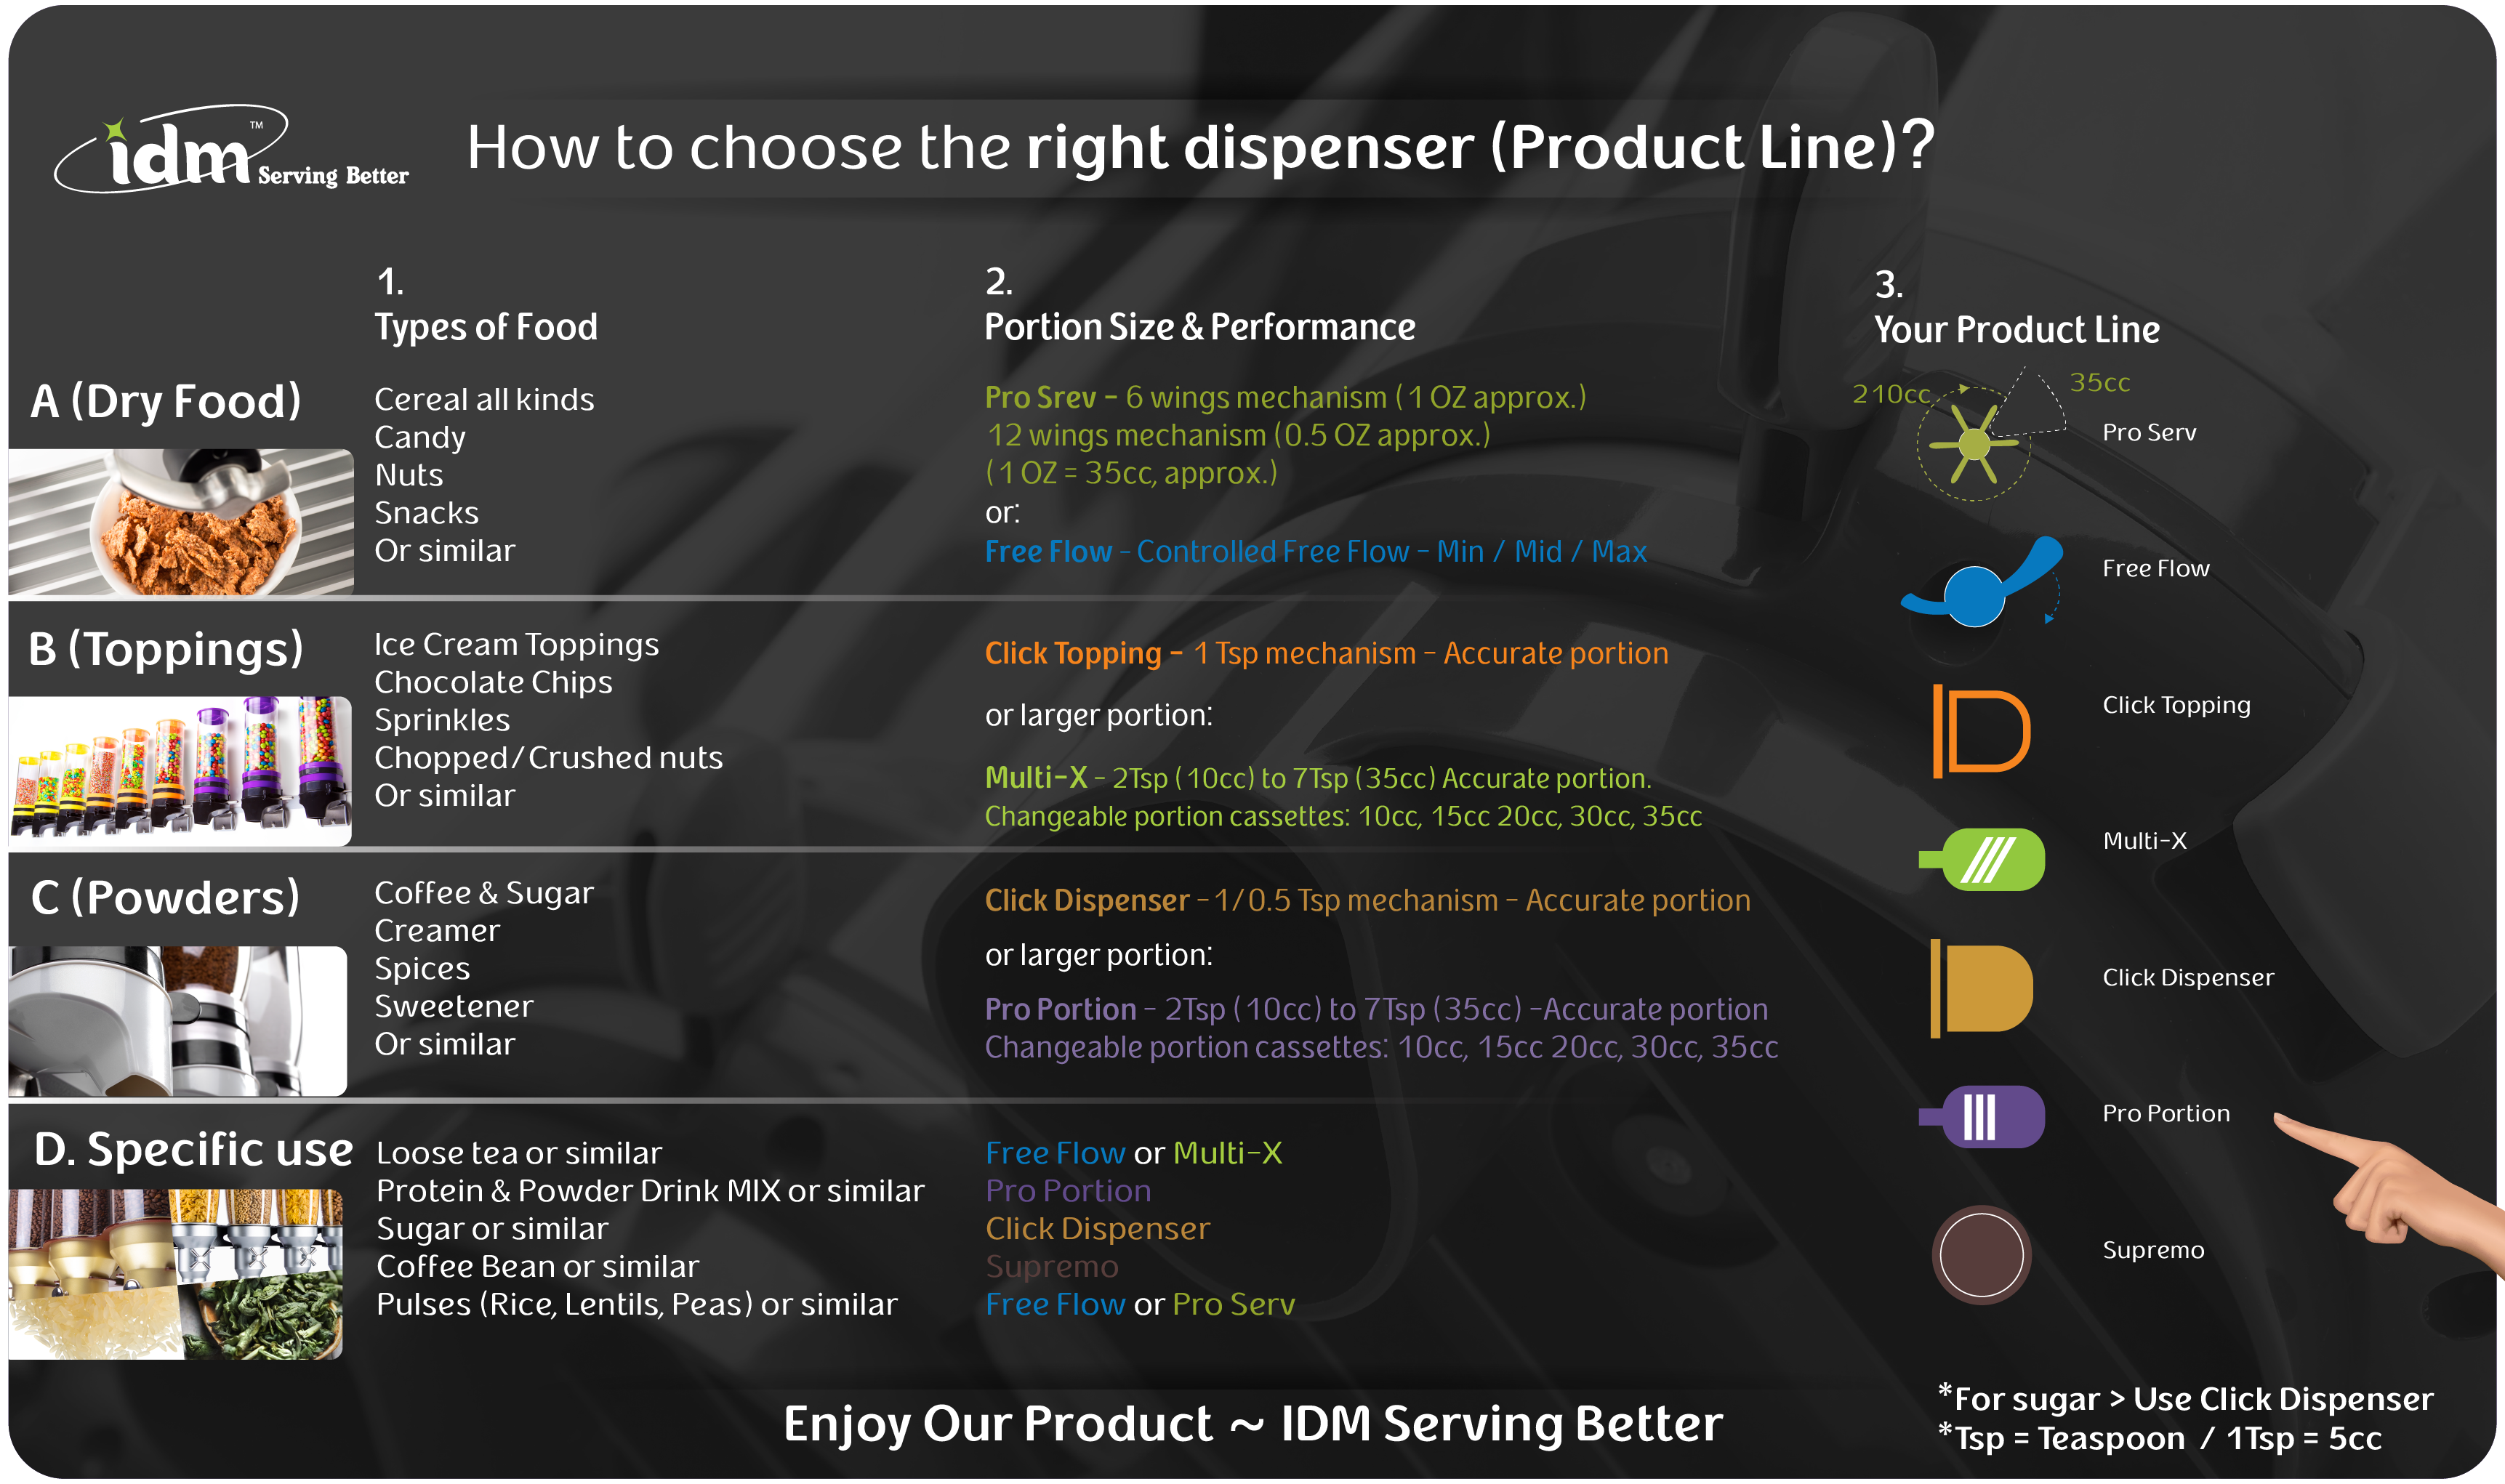 how-to-choose-the-right-dispenser-idm-serving-better.png